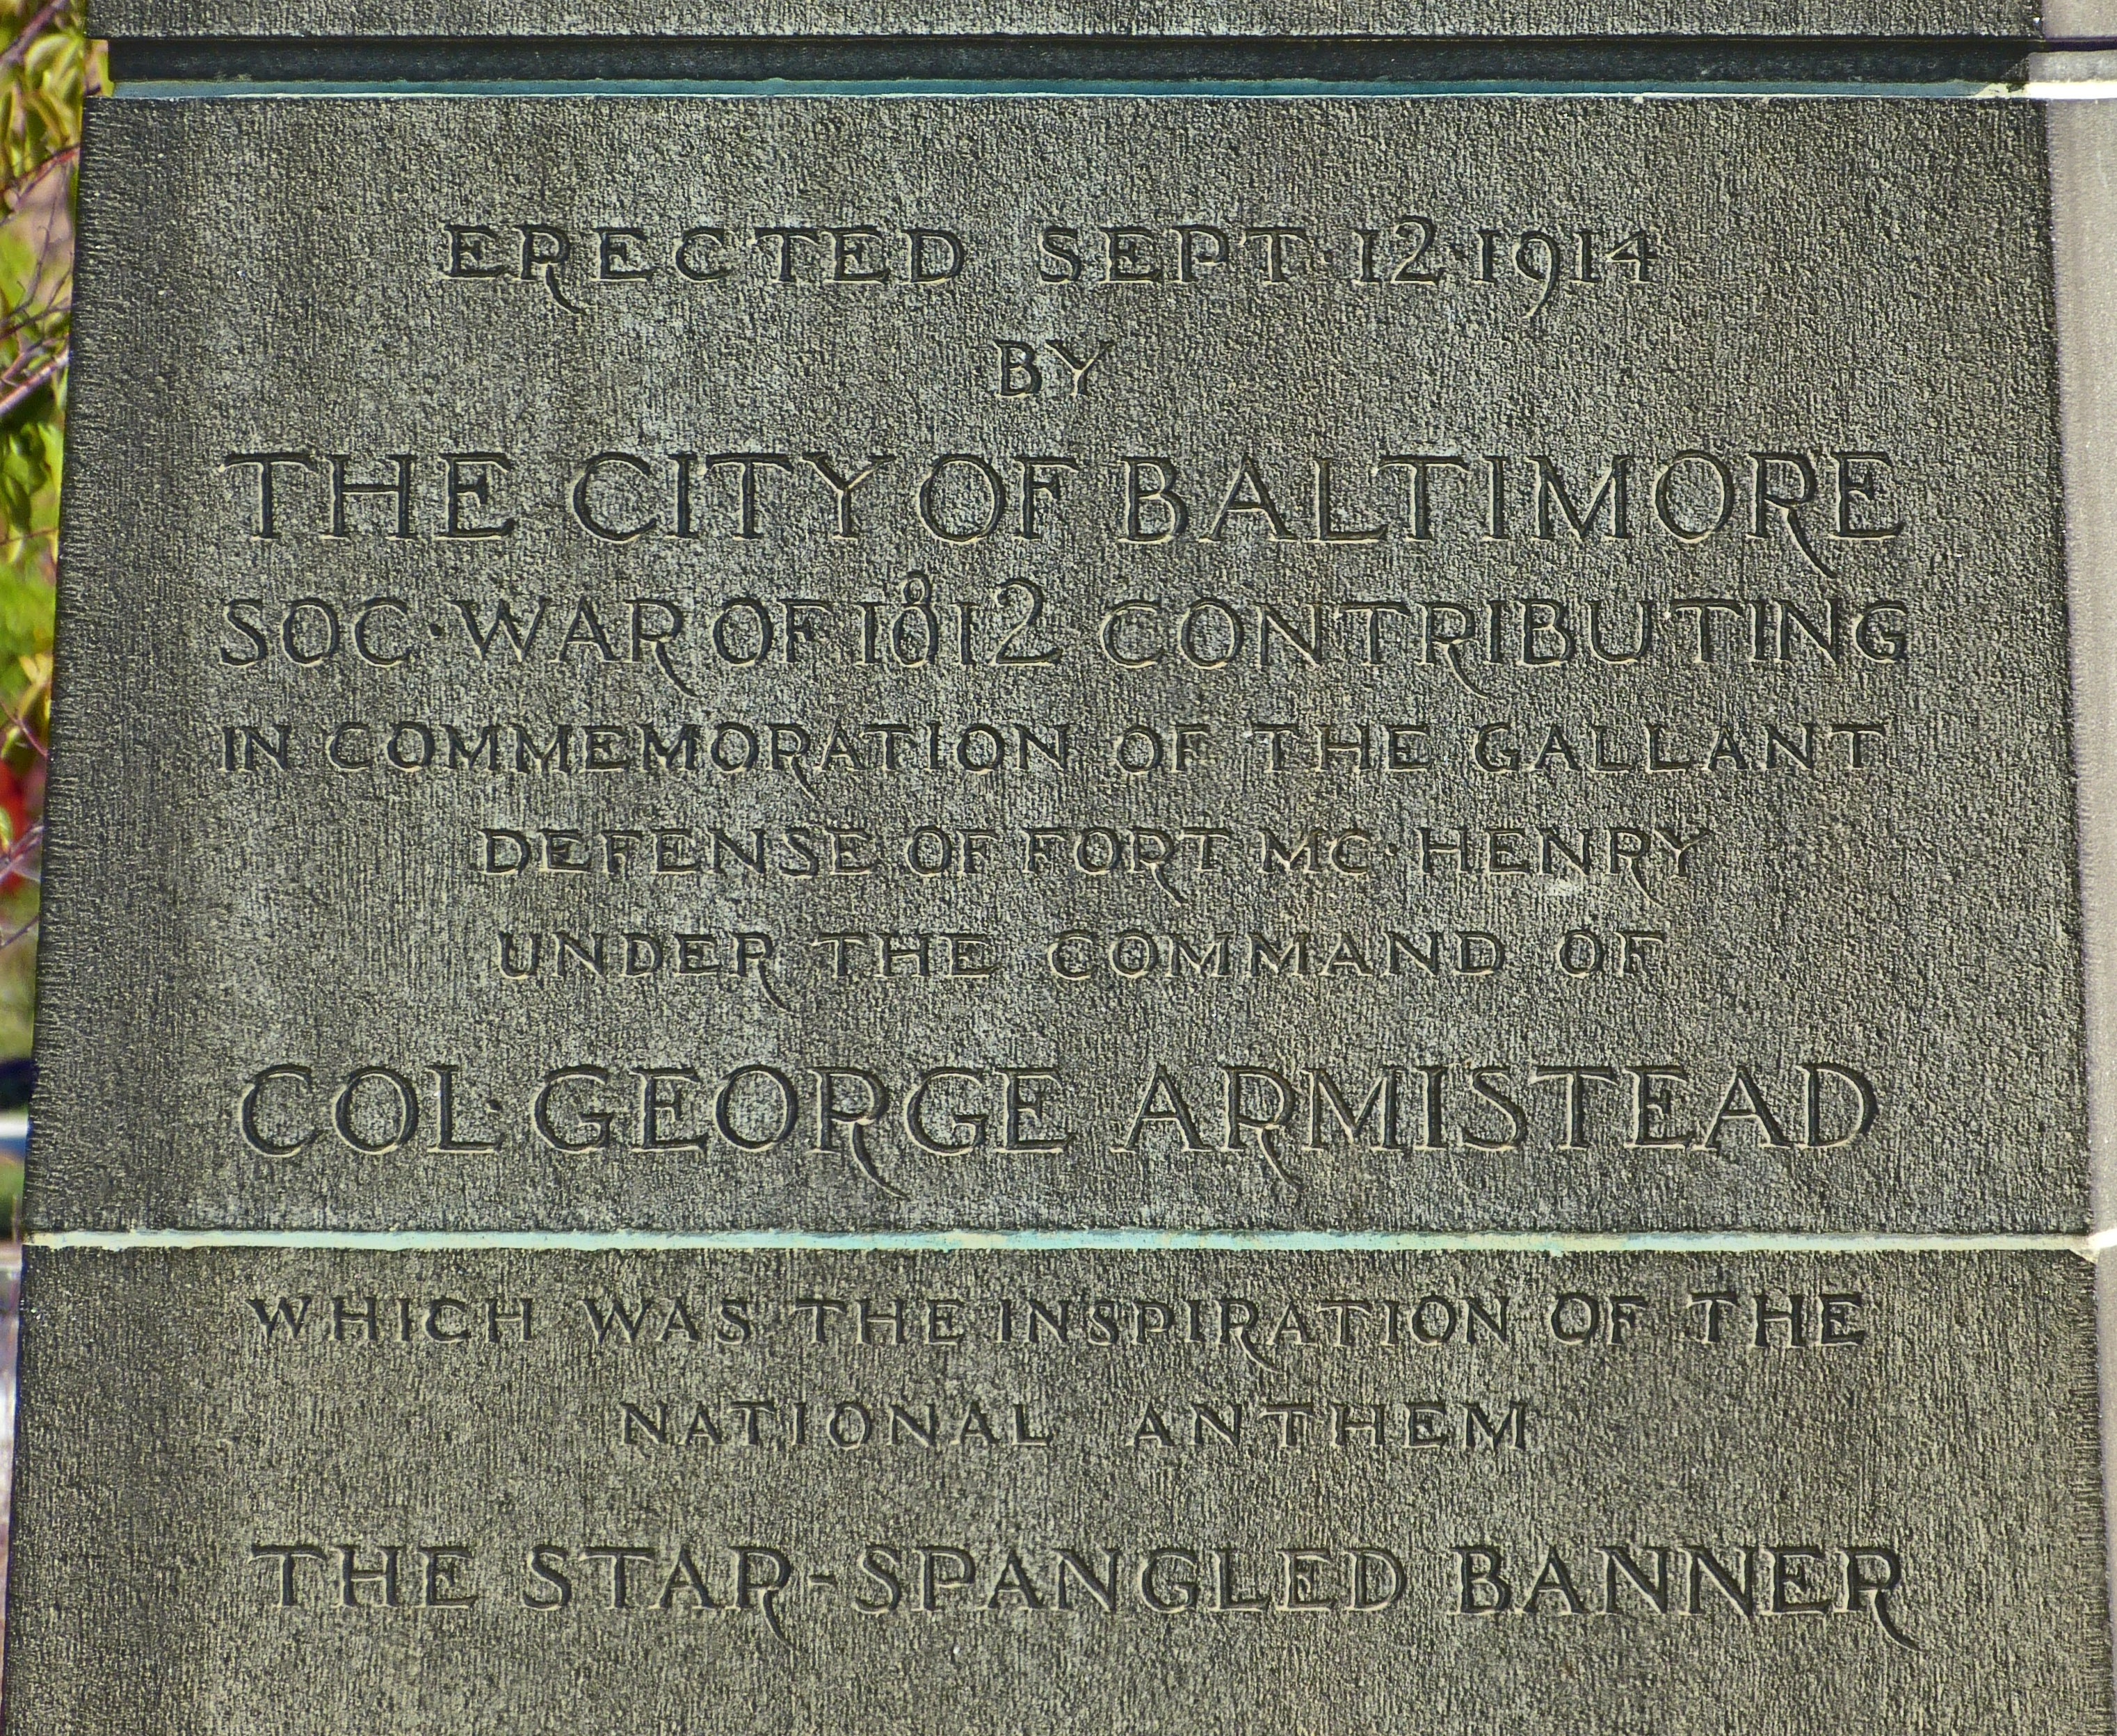 Erected Sept. 12 1914